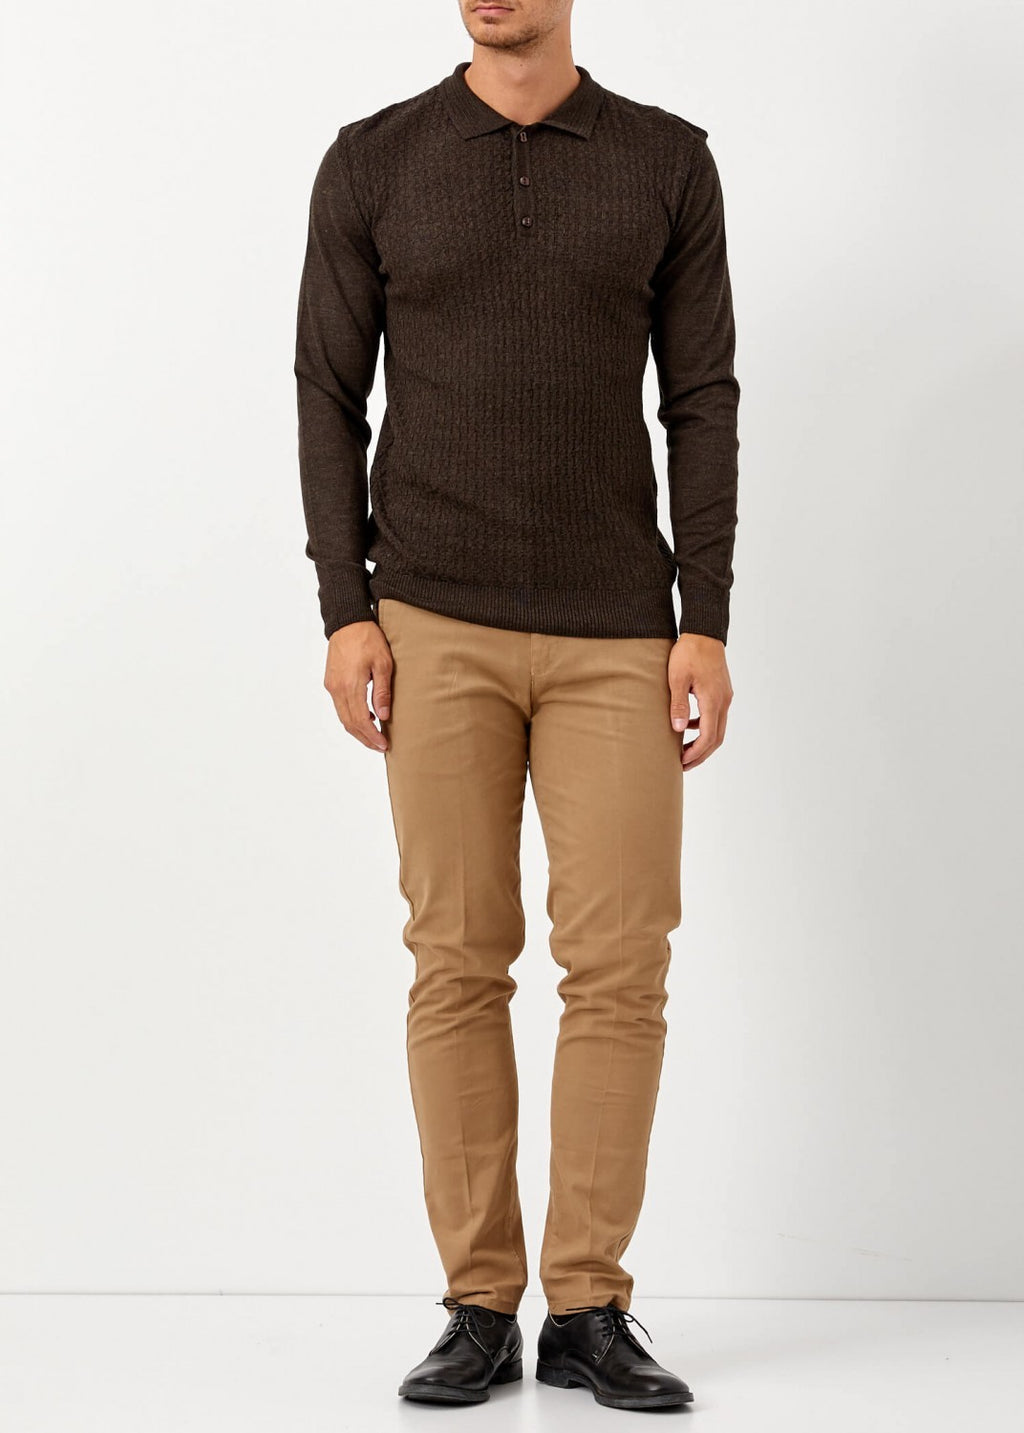 Men's Polo Neck Brown Wool Pullover